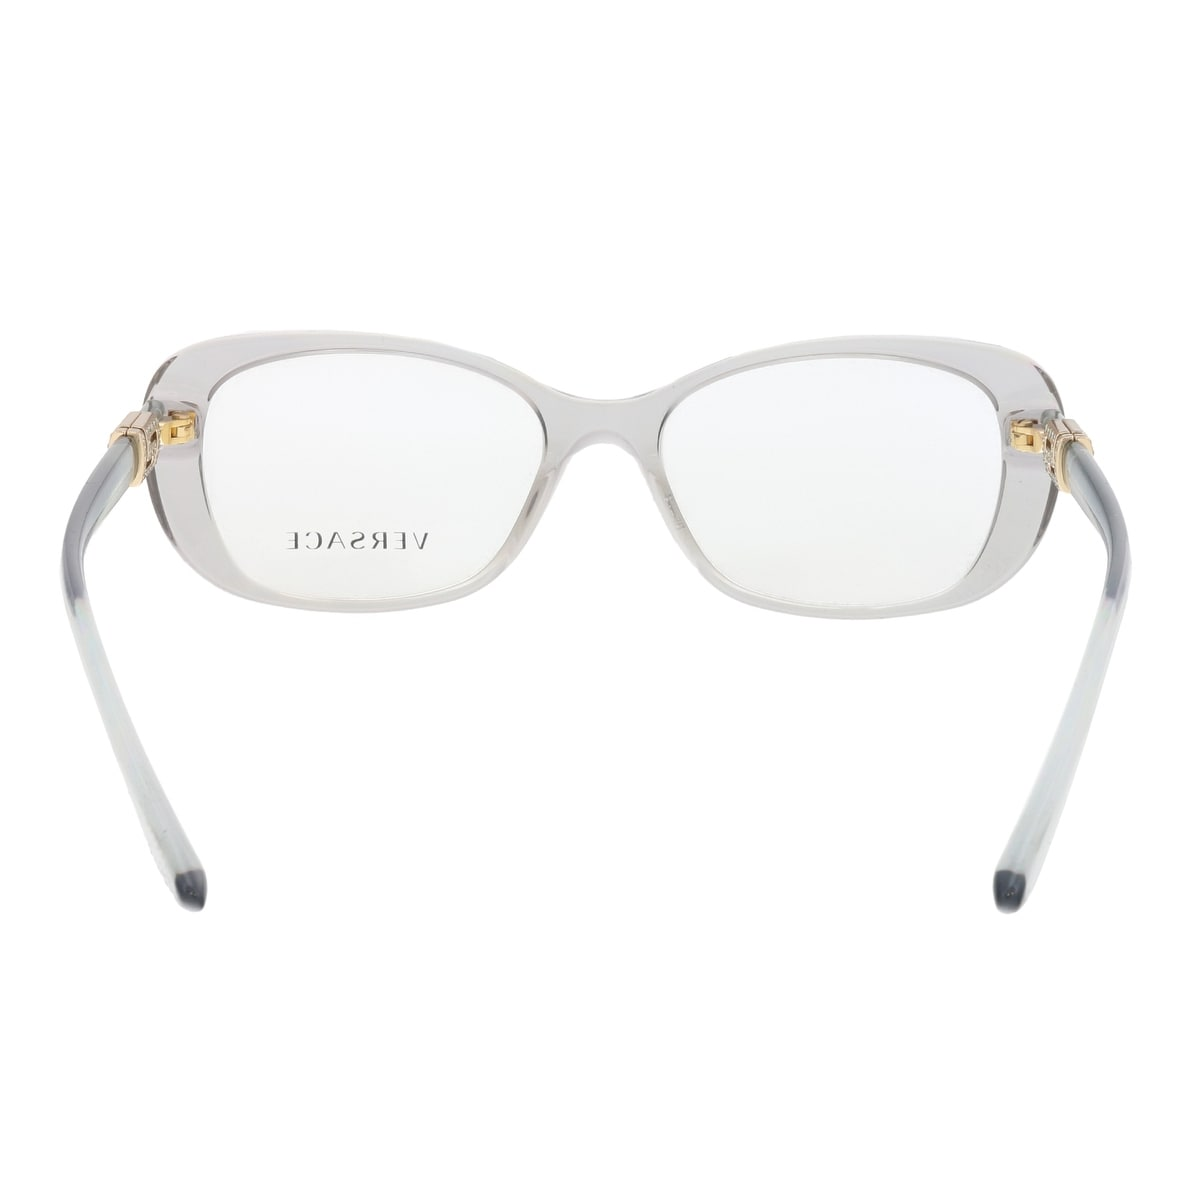 d00ca6350db1 Shop Versace VE3234-B 593 Grey Rectangle Optical Frames - 51-16-140 - Free  Shipping On Orders Over  45 - Overstock.com - 19833176